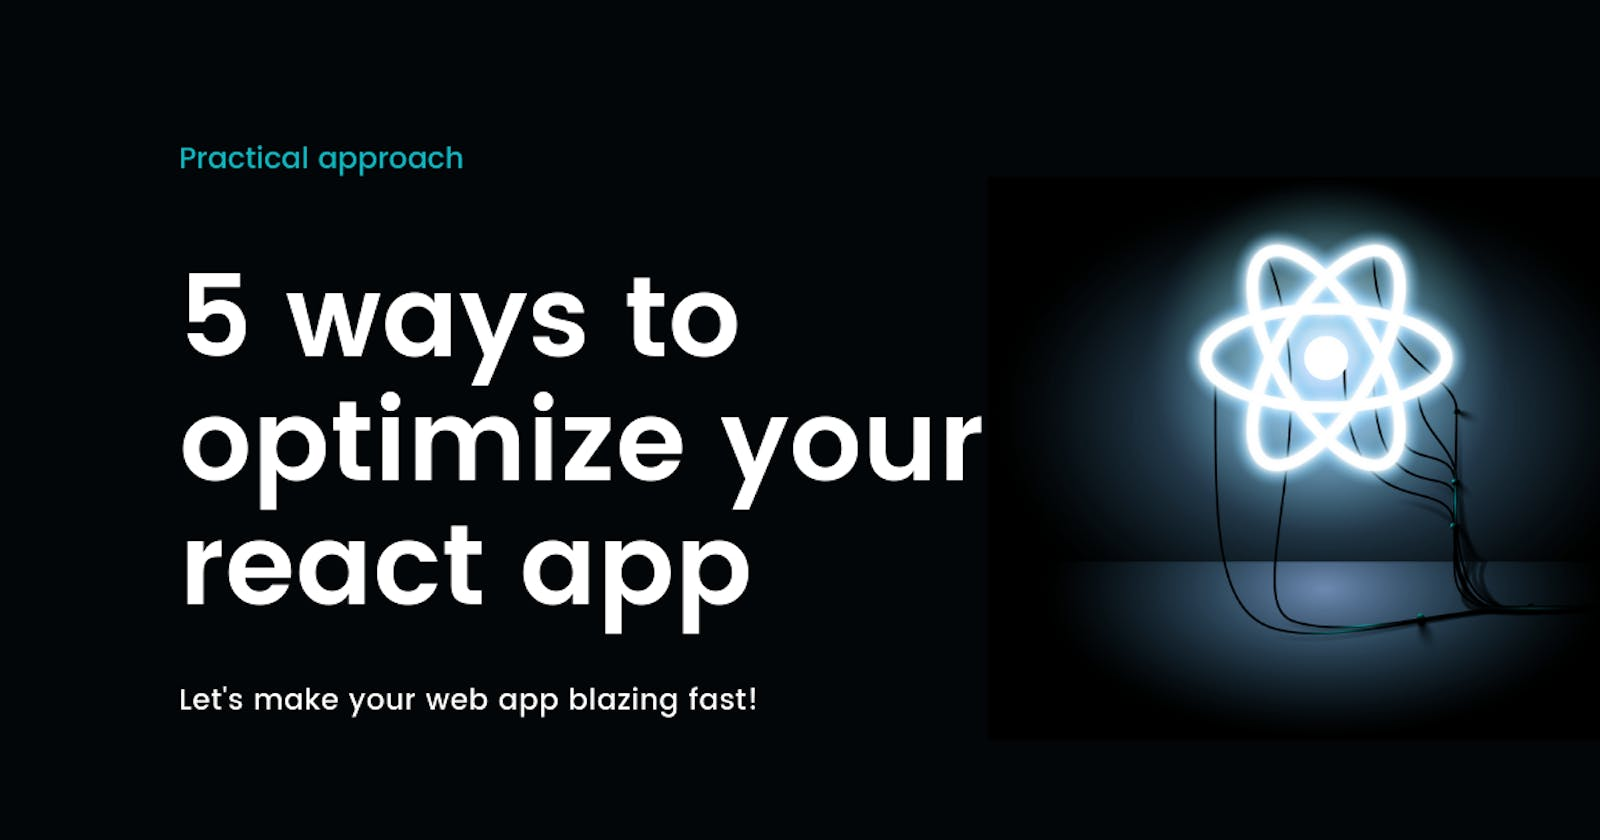 5 sure shot ways to optimize your react app's performance following the best practices.